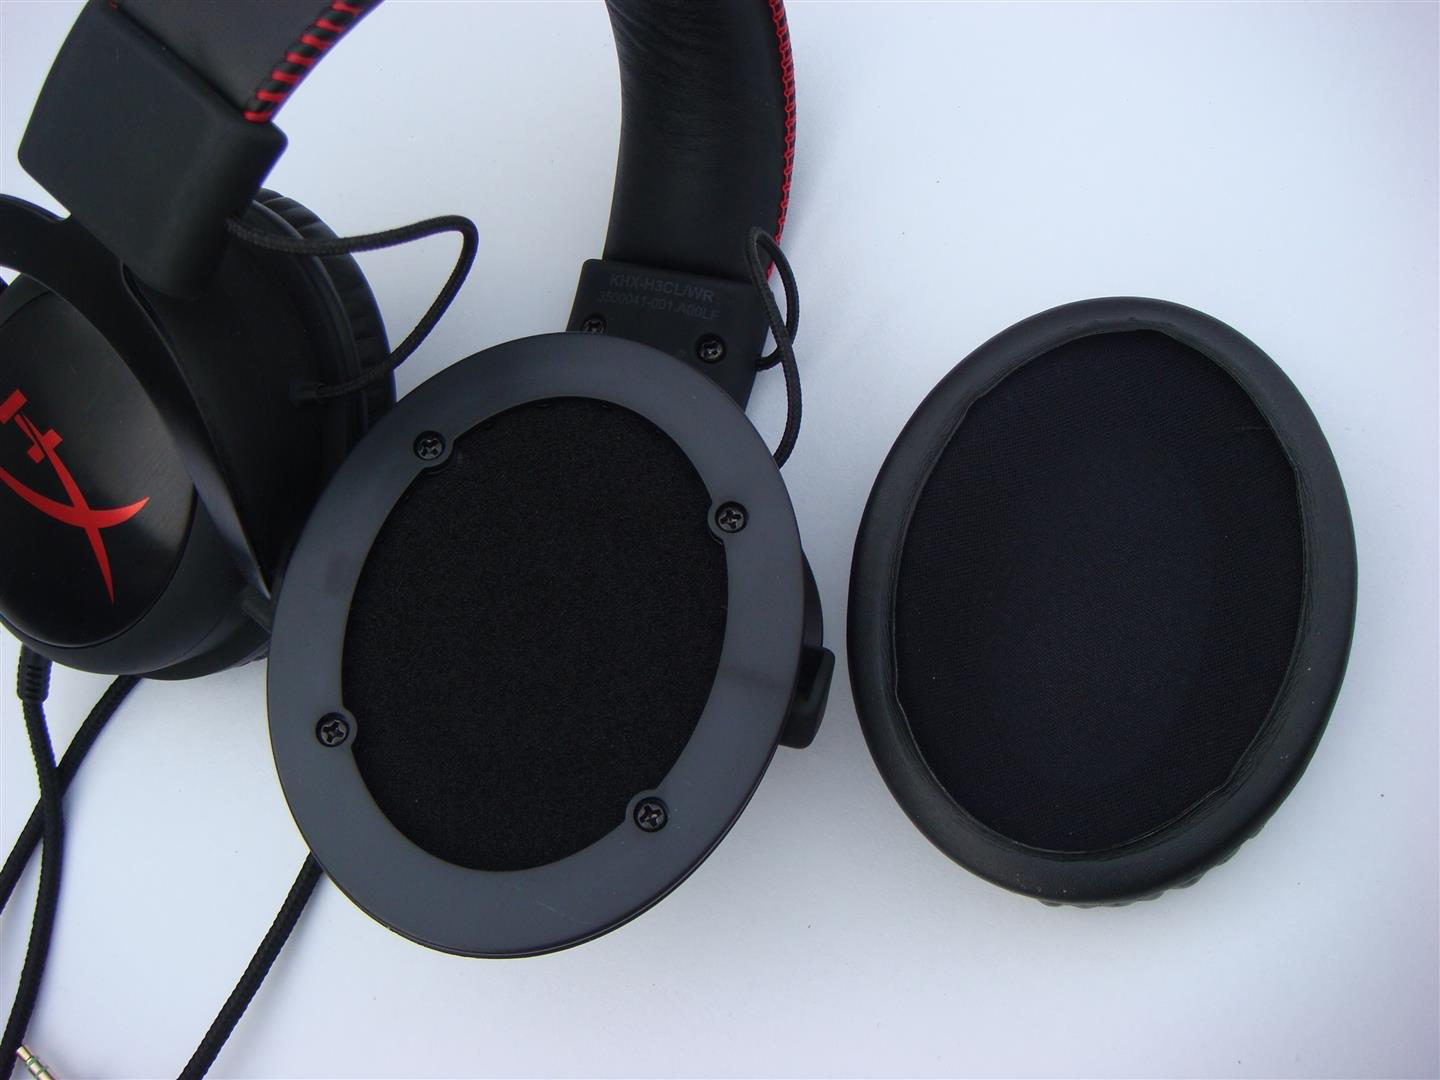 Kind of lining can you expect on the kingston hyperx cloud ii headset - Hyperx Cloud Pro Gaming Headset Comes With 53mm Drive With Neodymium Magnet Installed Inside The Ear Cups And Inside Of Ear Cup Is Lined With Special